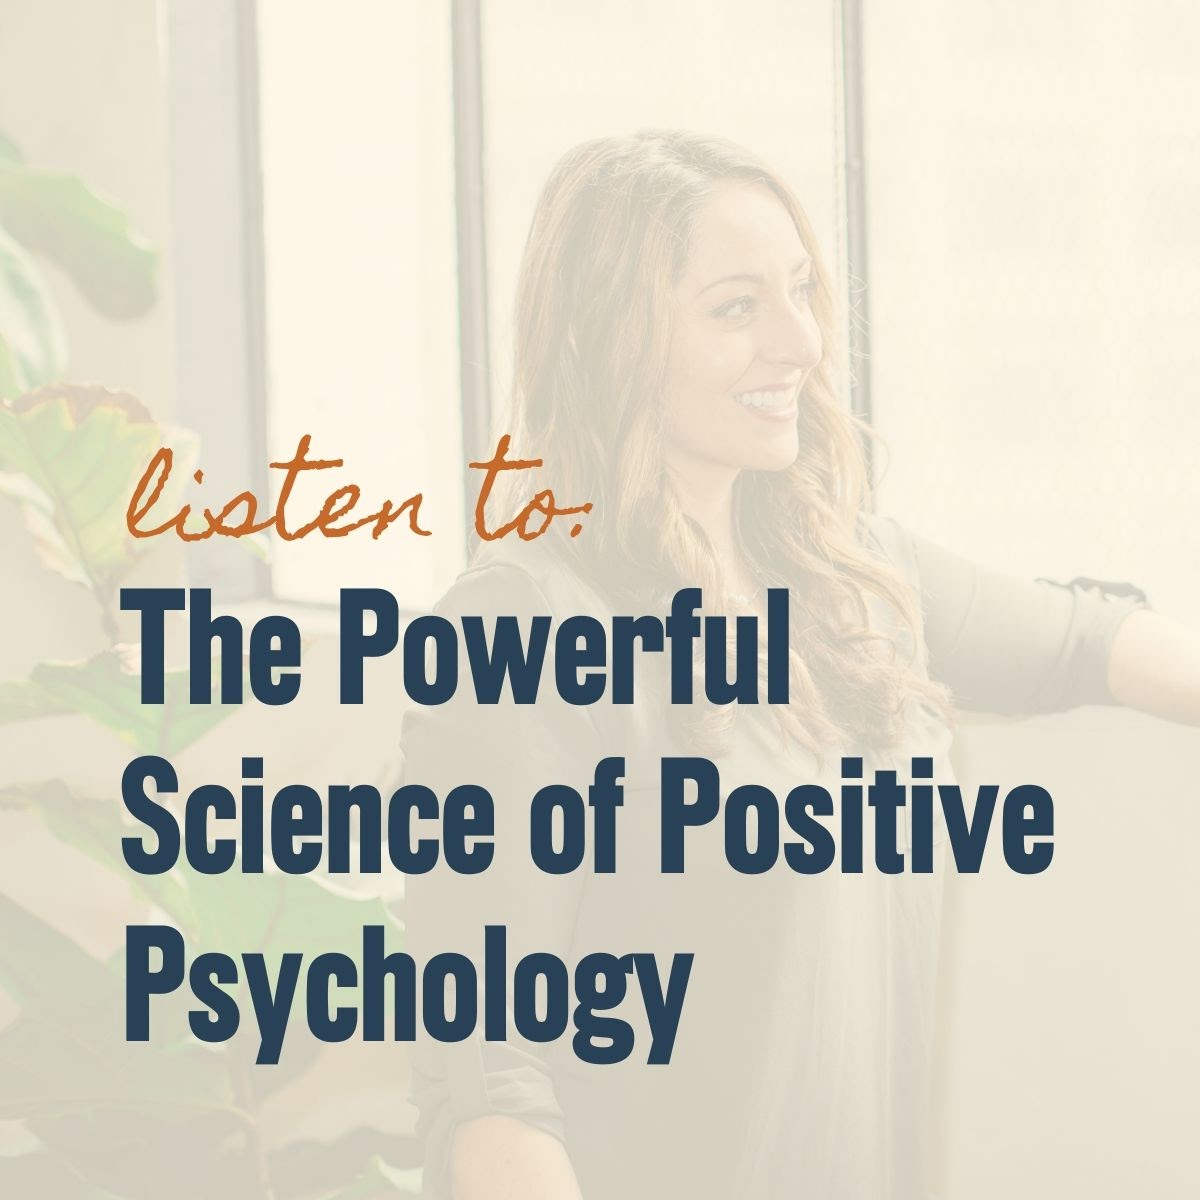 Listen to: The Powerful Science of Positive Psychology with JRNI Coaching CEO and Co-Founder Noelle Cordeaux in the background